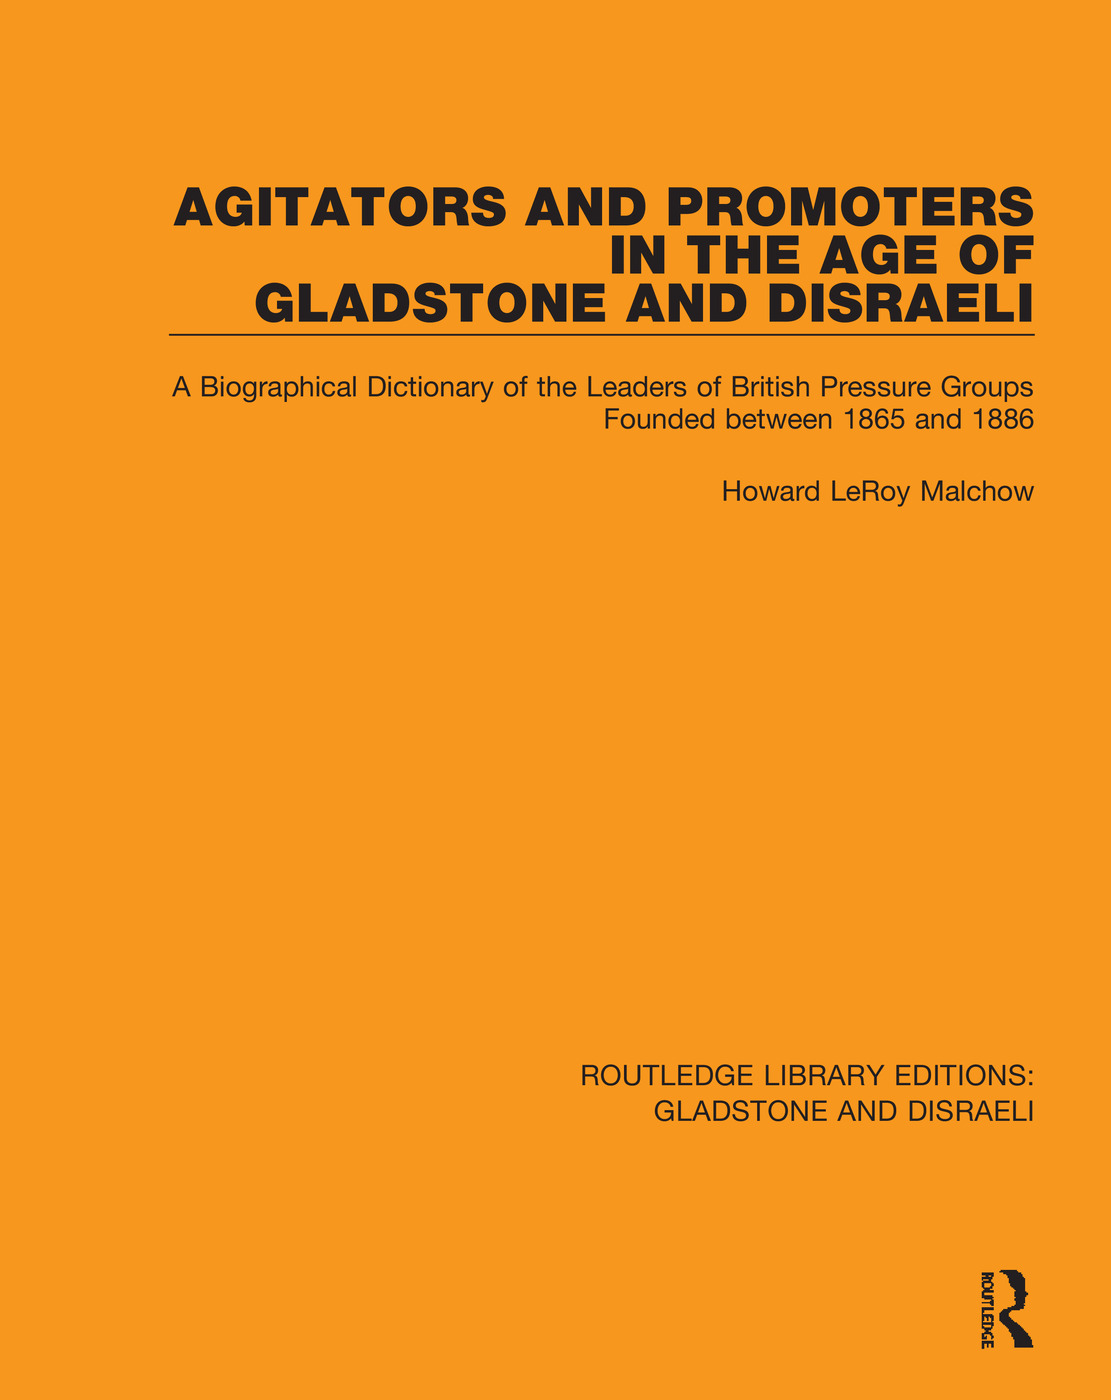 Agitators and Promoters in the Age of Gladstone and Disraeli: A Biographical Dictionary of the Leaders of British Pressure Groups Founded Between 1865 and 1886 book cover